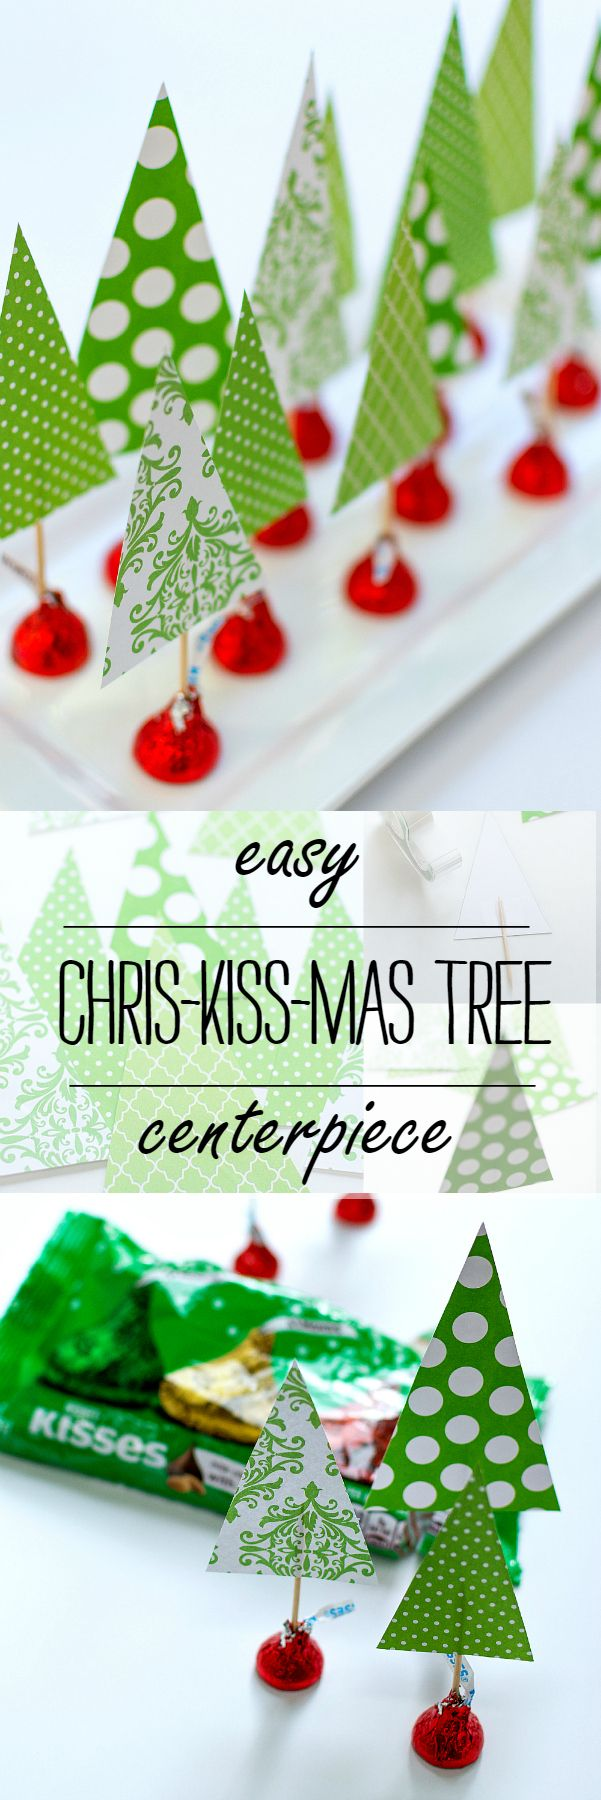 Diy christmas party decorations - Christmas Crafts With Kids Christmas Name Tagsdiy Christmas Favorswork Christmas Party